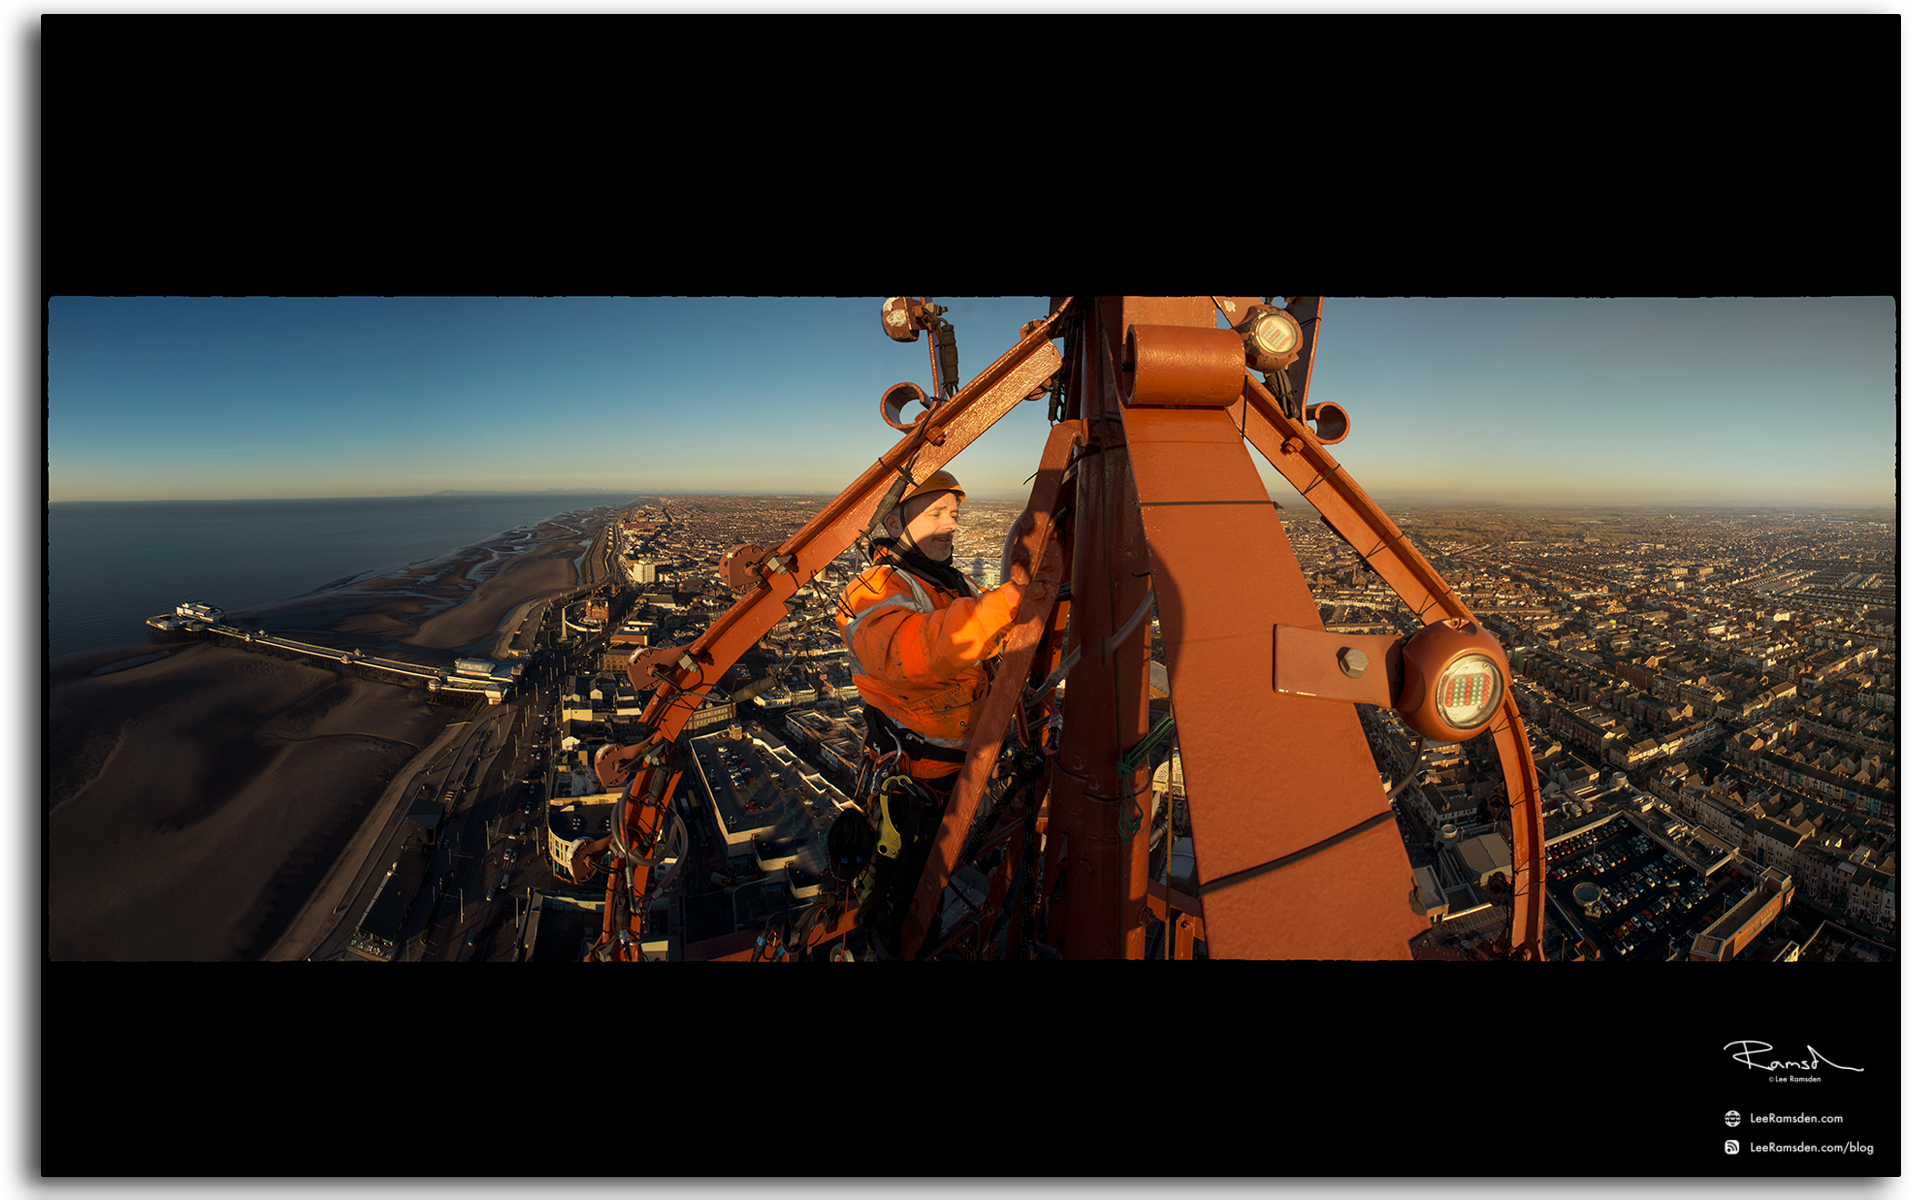 02 Wesley Berry Wez top of Blackpool Tower changing the light bulbs IRATA rope access photography by Lee Ramsden